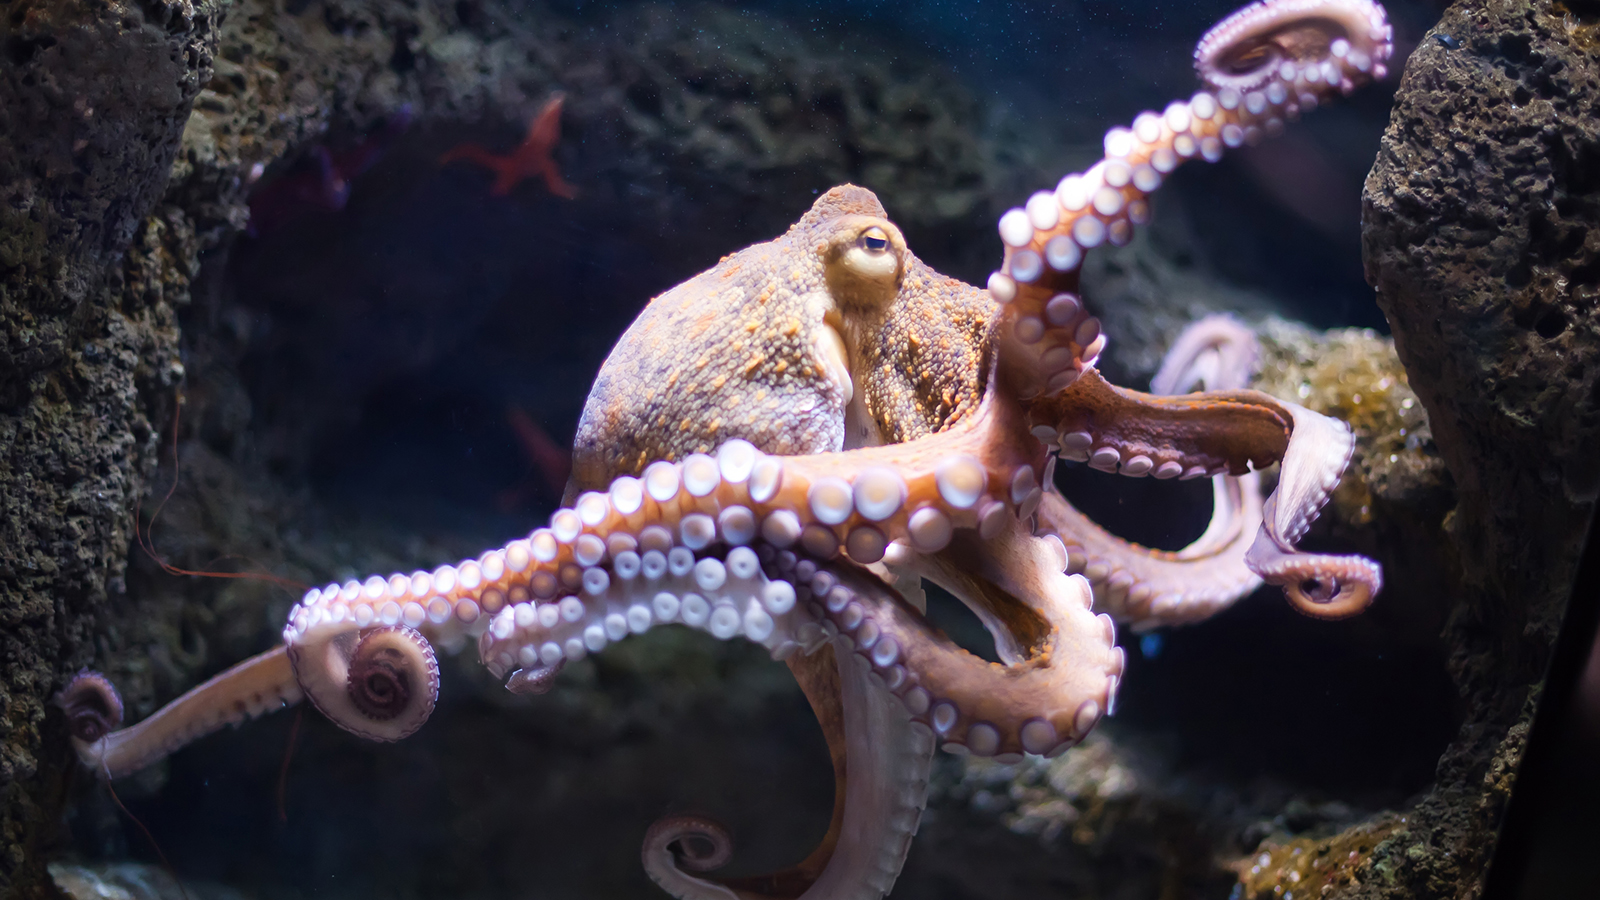 Real Octopus Image HD Wallpapers – Animals And Birds